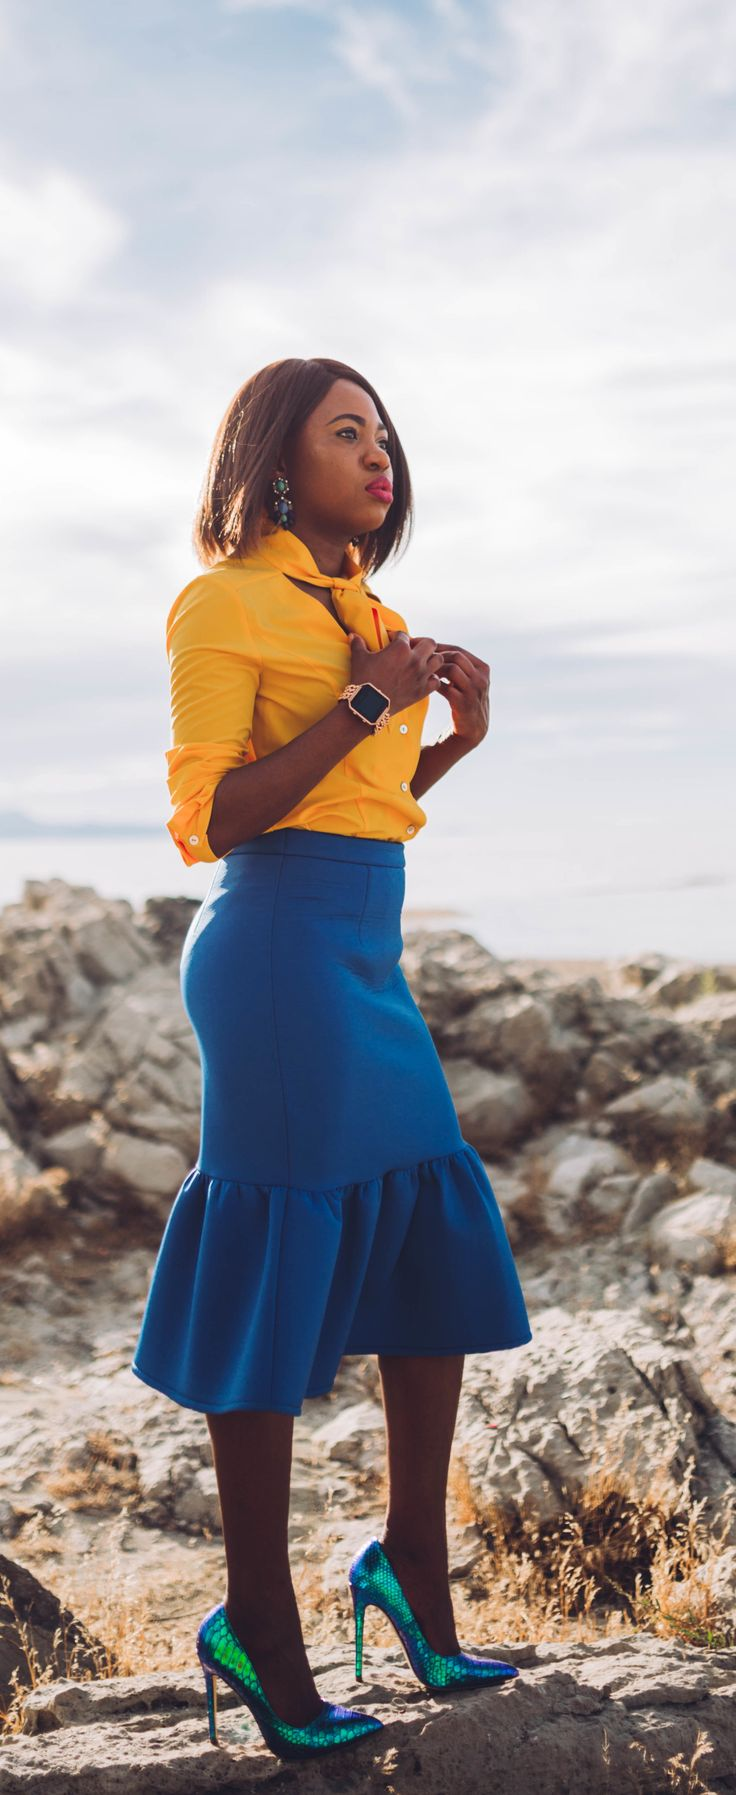 Never thought blue & yellow would look this good! Very work appropriate and stylish with the neck tie bow and peplum midi skirt.   Work style, dressy outfit, women's style, black girl, Nigerian blogger, pussy bow top, neoprene skirt, iridescent hologram heels